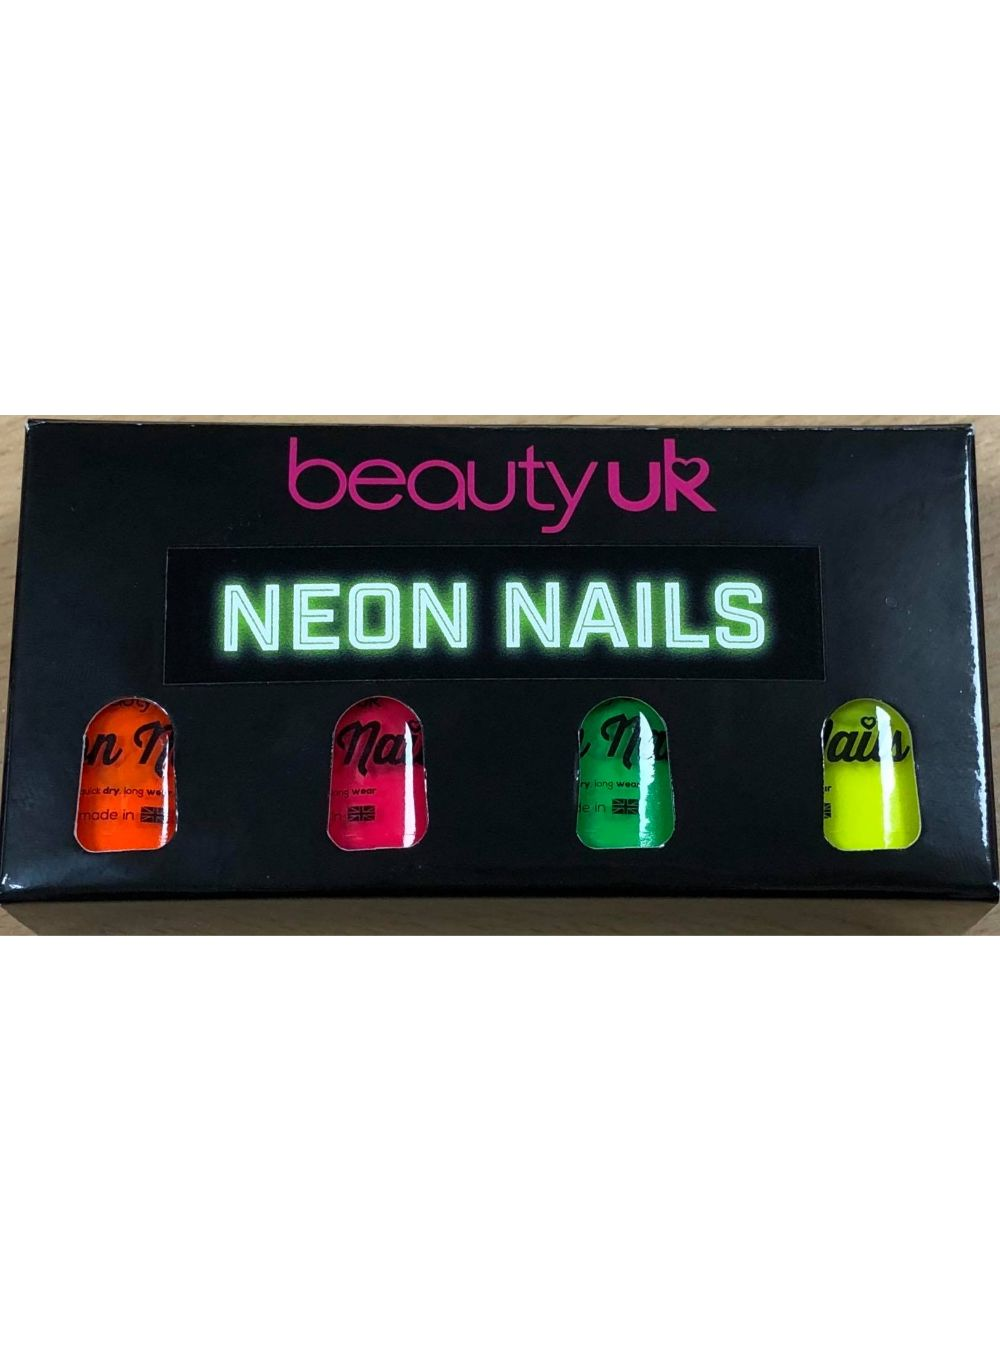 Neon Nail Gift Set by BeatyUK - ClothesLabels.UK